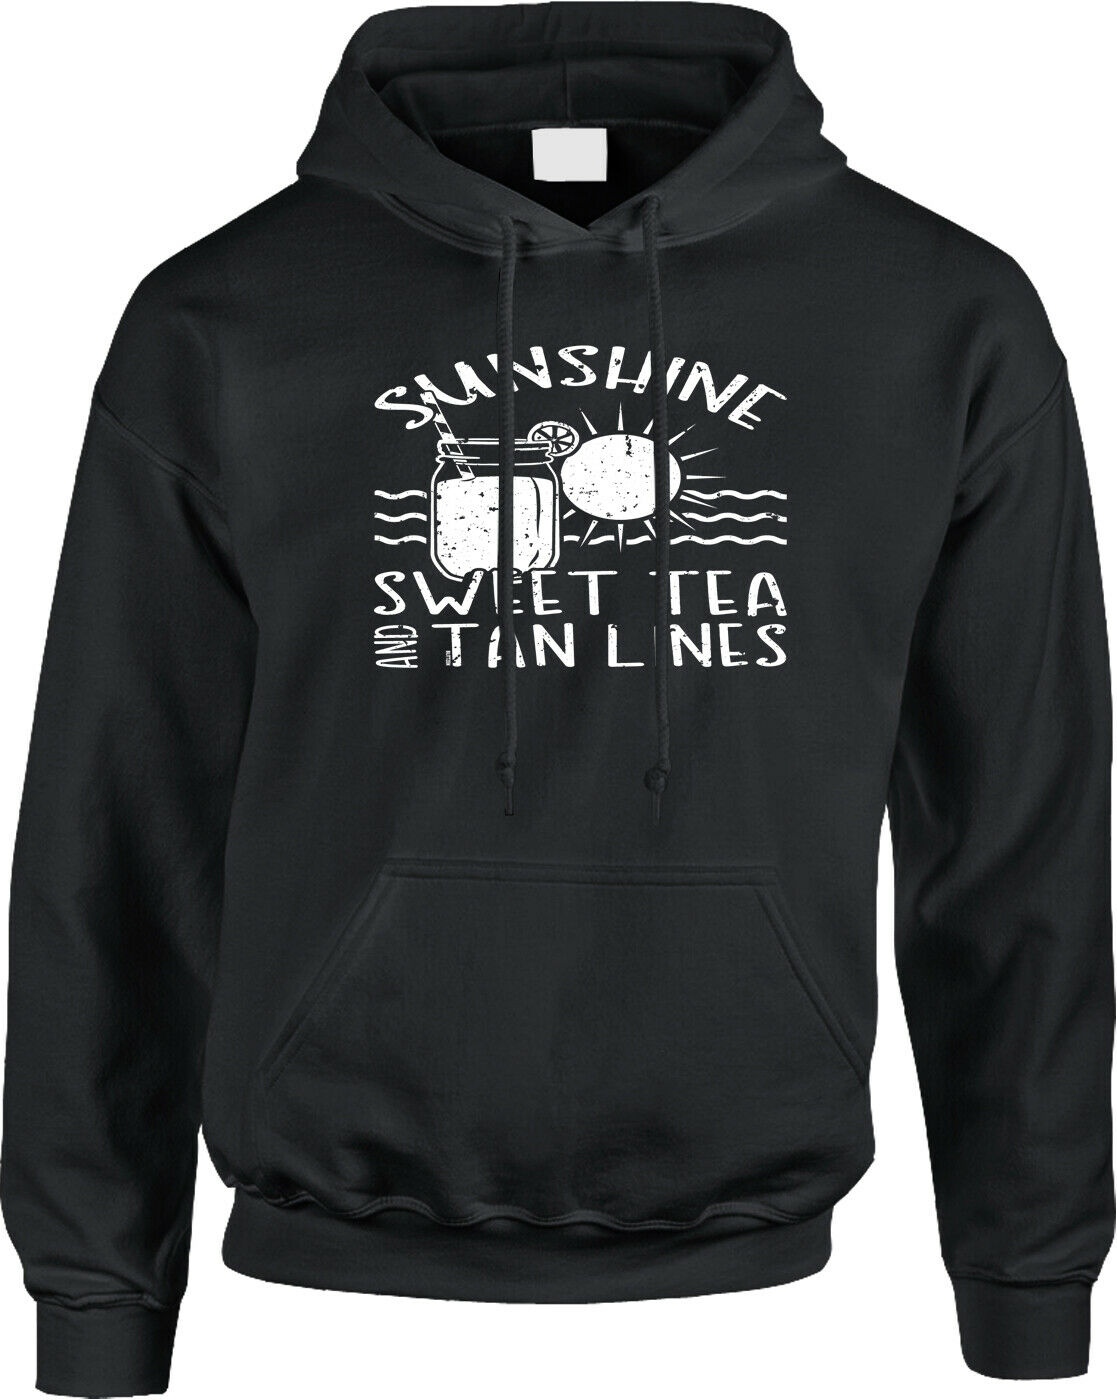 Sunshine Sweet Tea Tan Lines Southern Country Beach Party Tailgate Mens Hoodie